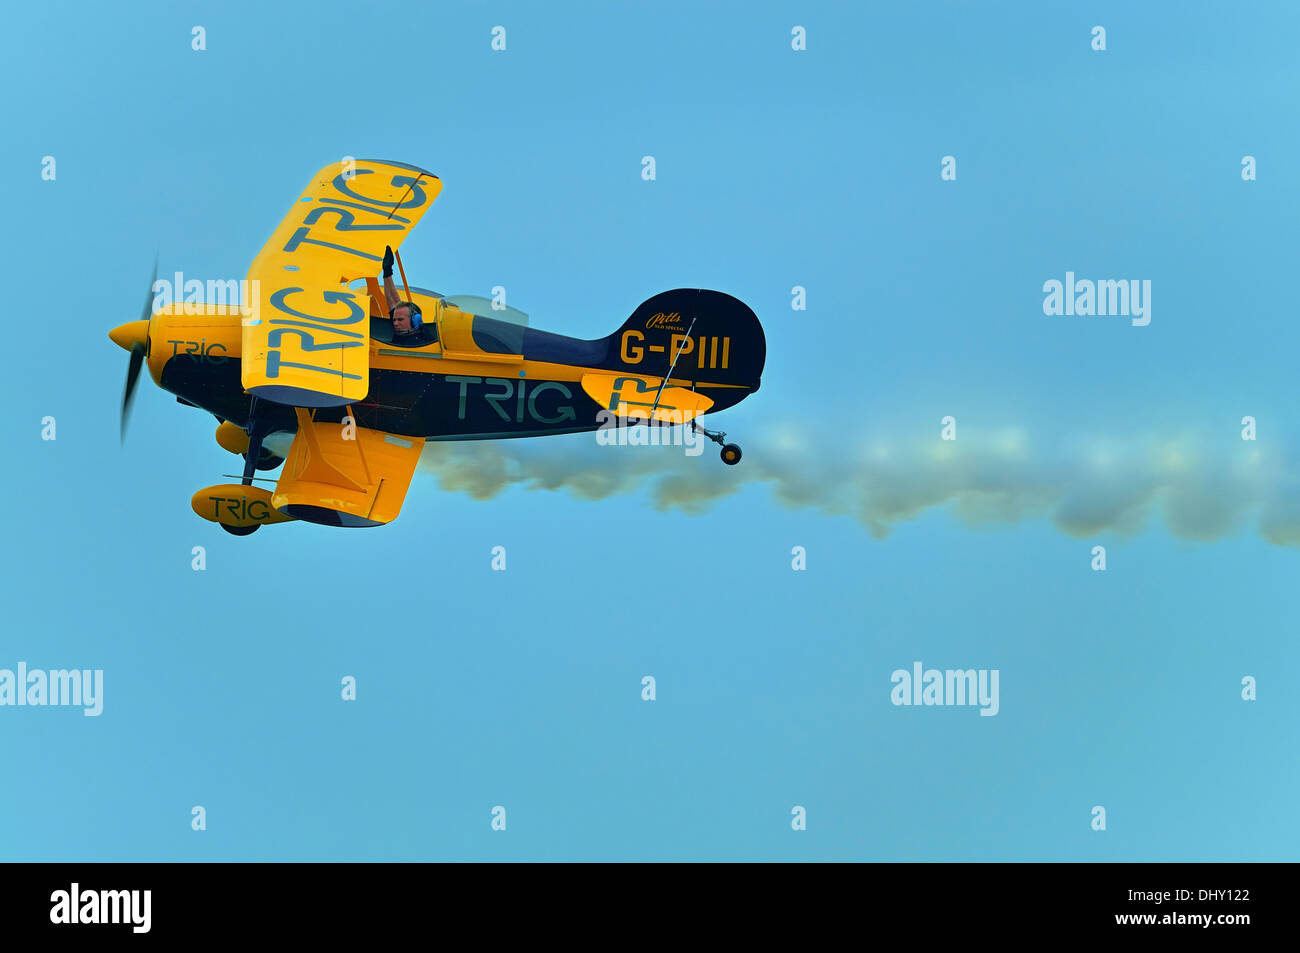 Trig aerobatic team.Flying Pitts Special S-1D biplanes at Clacton air show 2013 - Stock Image